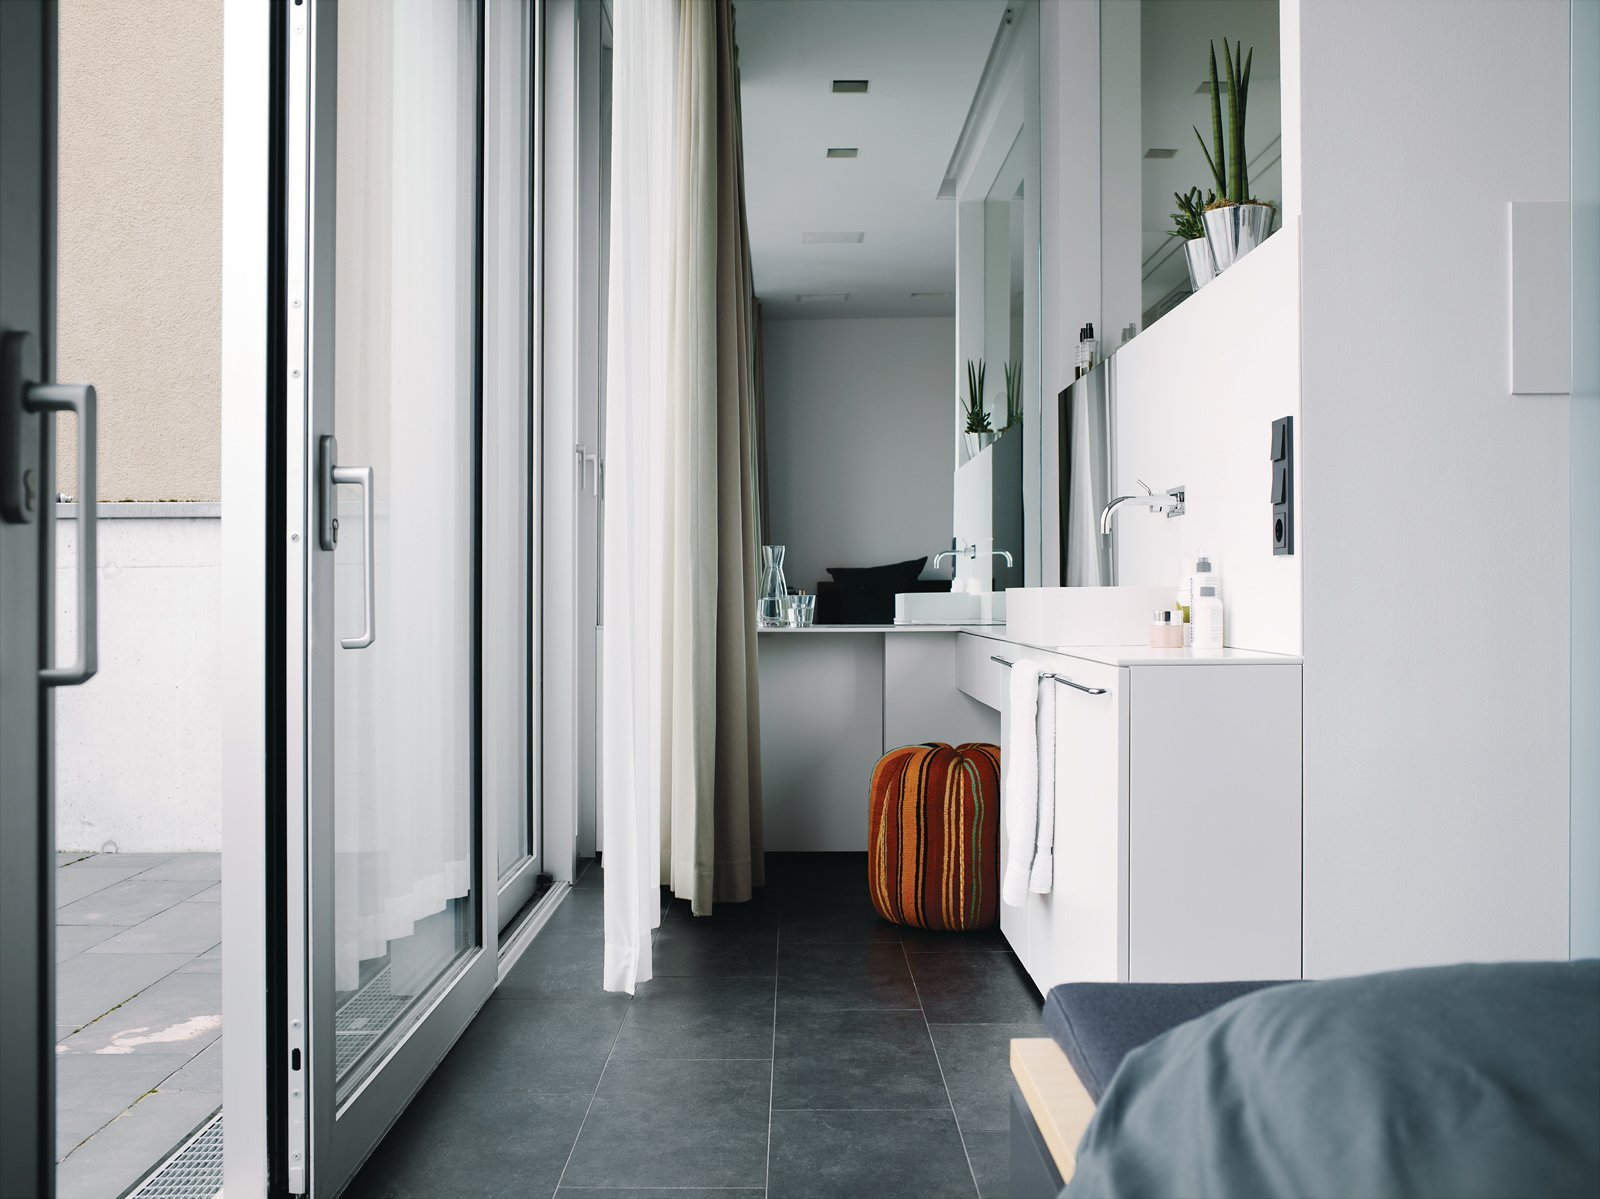 Bath Room and Vessel Sink The bedroom and bathroom make up the private zones on the top floor.  Photo 4 of 16 in A Rational Approach